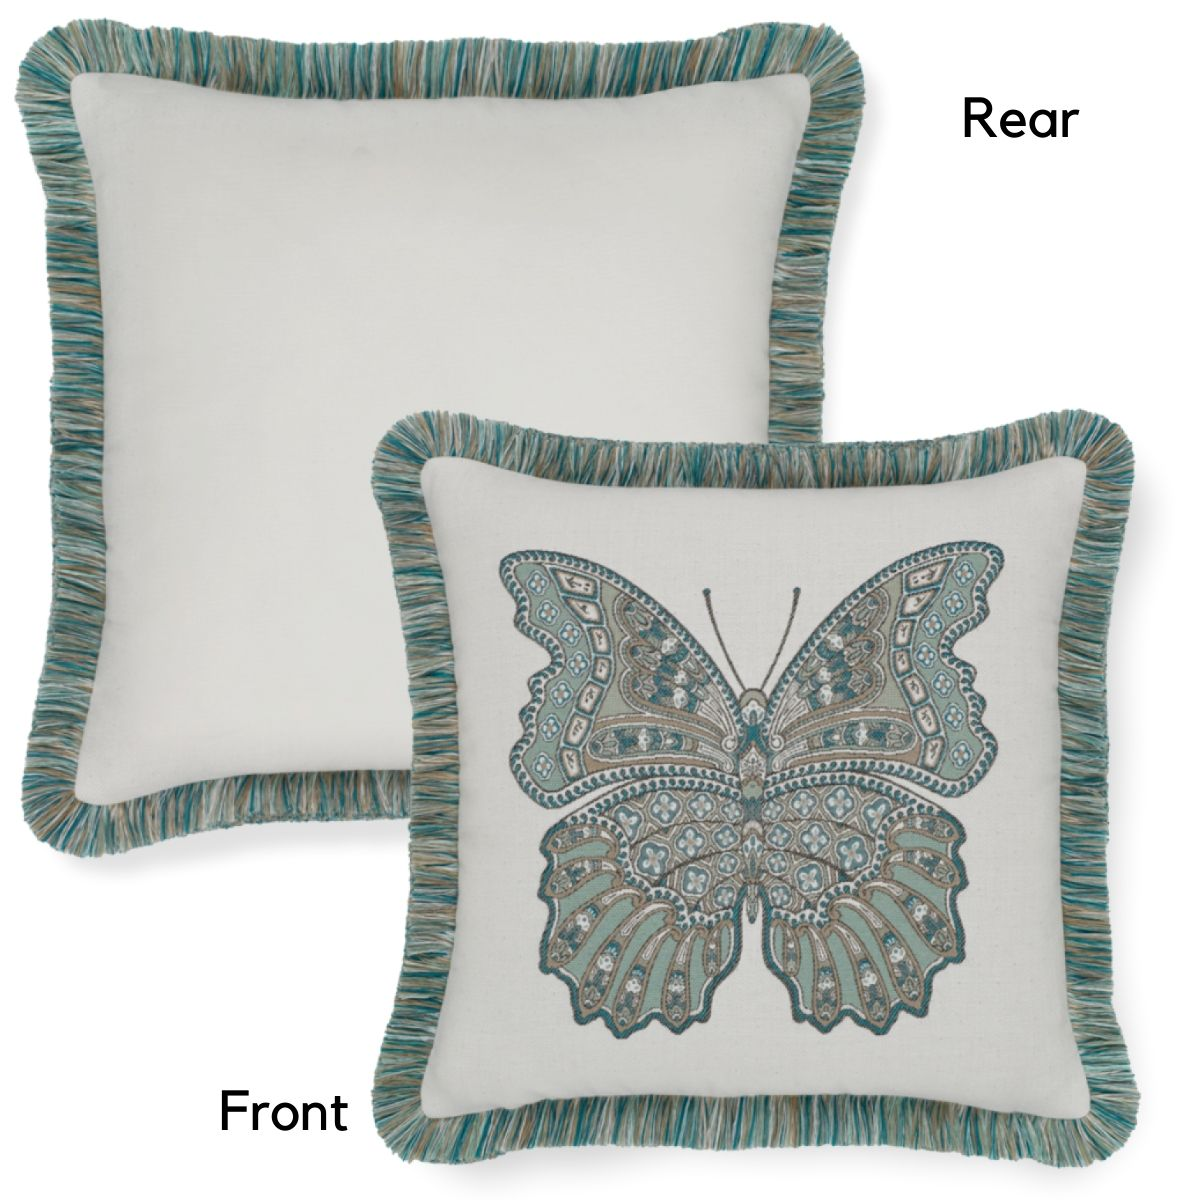 mariposa-lagoon-elaine-smith-pillow front and rear